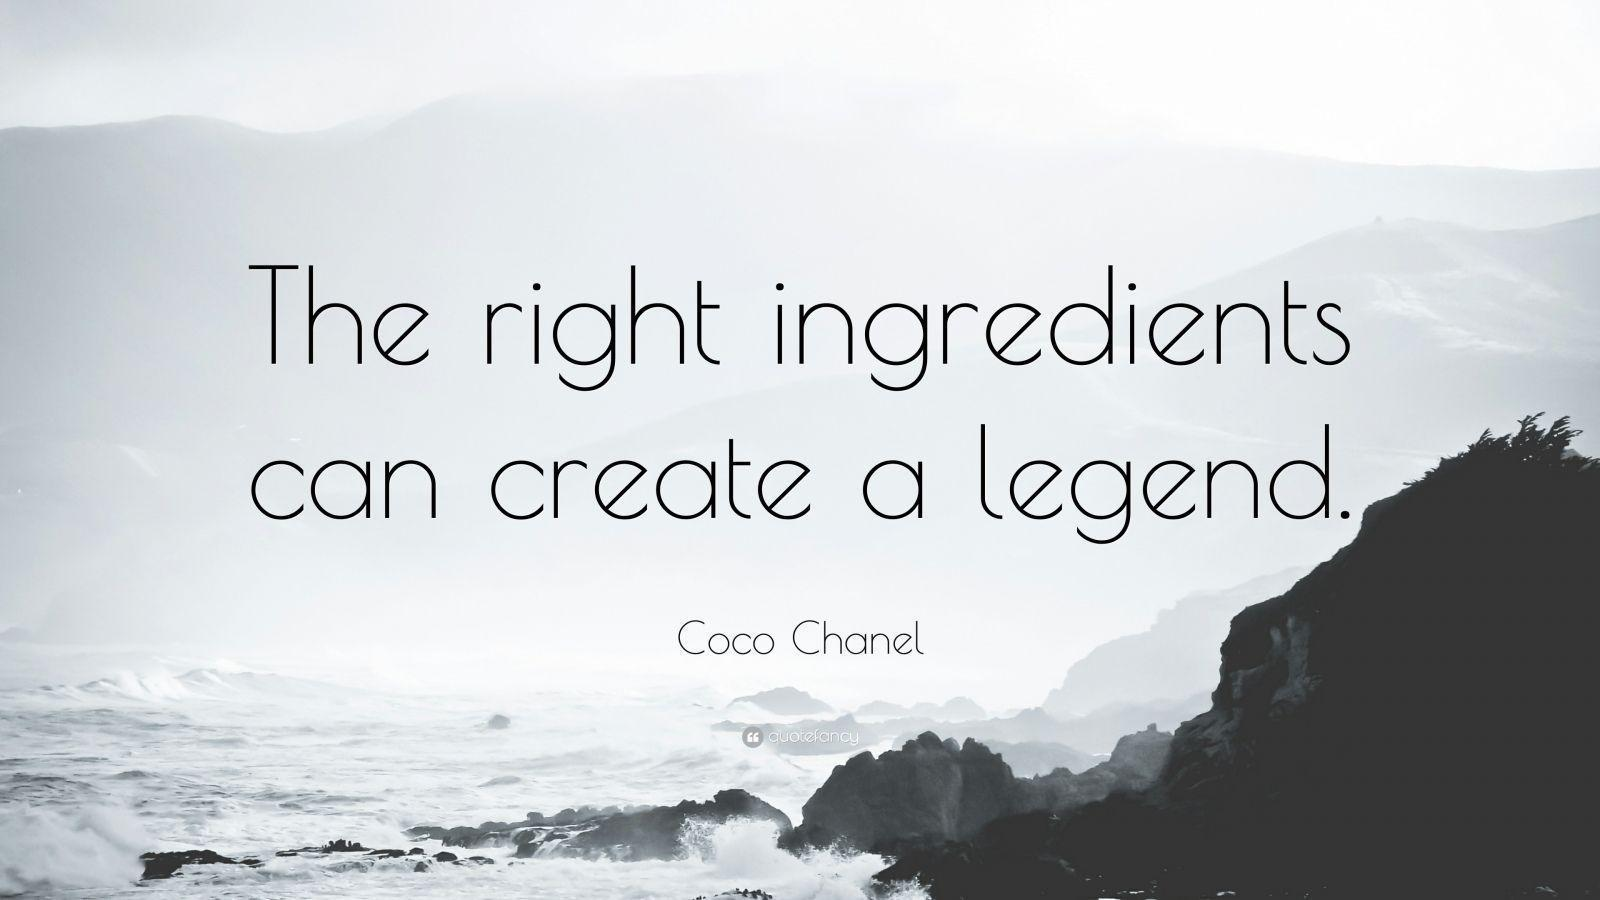 Coco Chanel Quotes (100 wallpapers) - Quotefancy